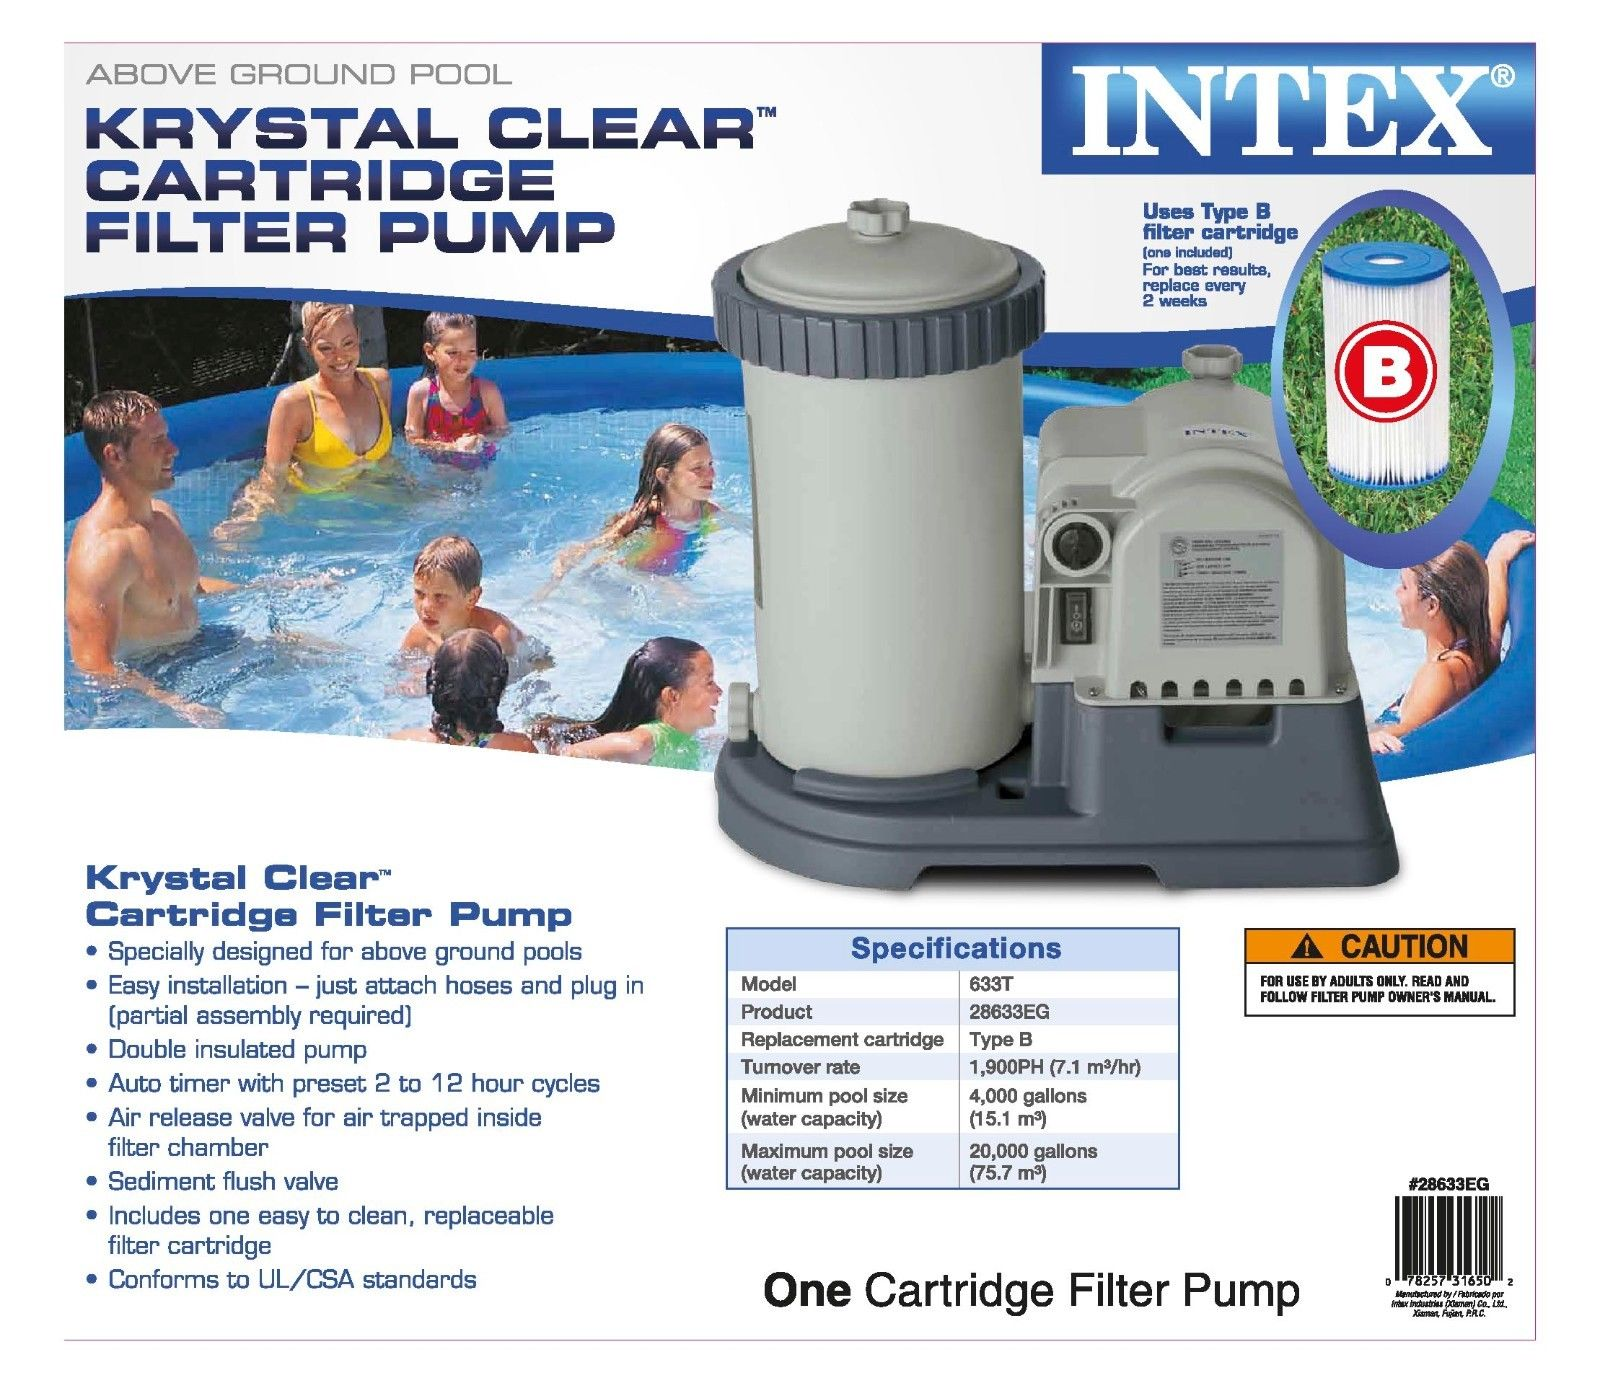 28633eg__3 intex 2500 gph krystal clear gfci pool filter pump with timer 633 Basic Electrical Wiring Diagrams at alyssarenee.co